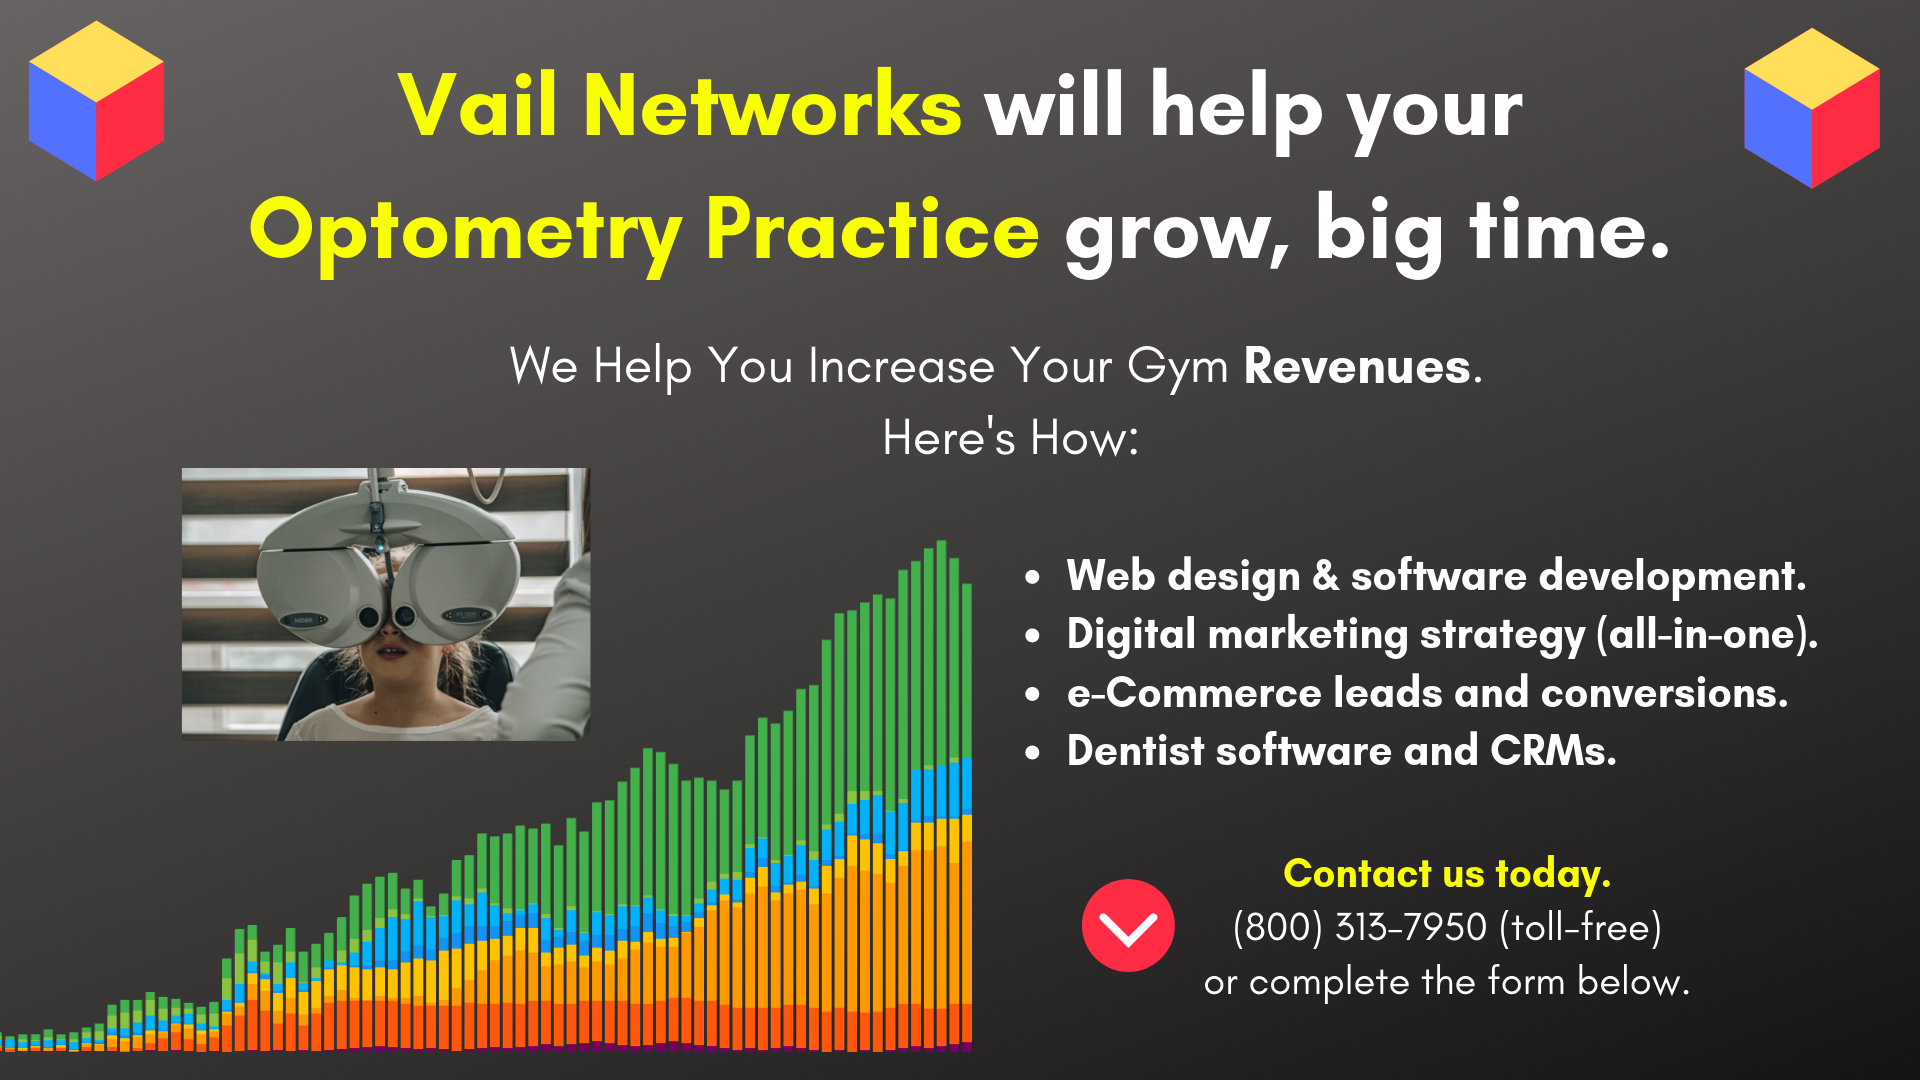 Company to help with Optometry marketing, seo, and website development: by vailnetworks.com